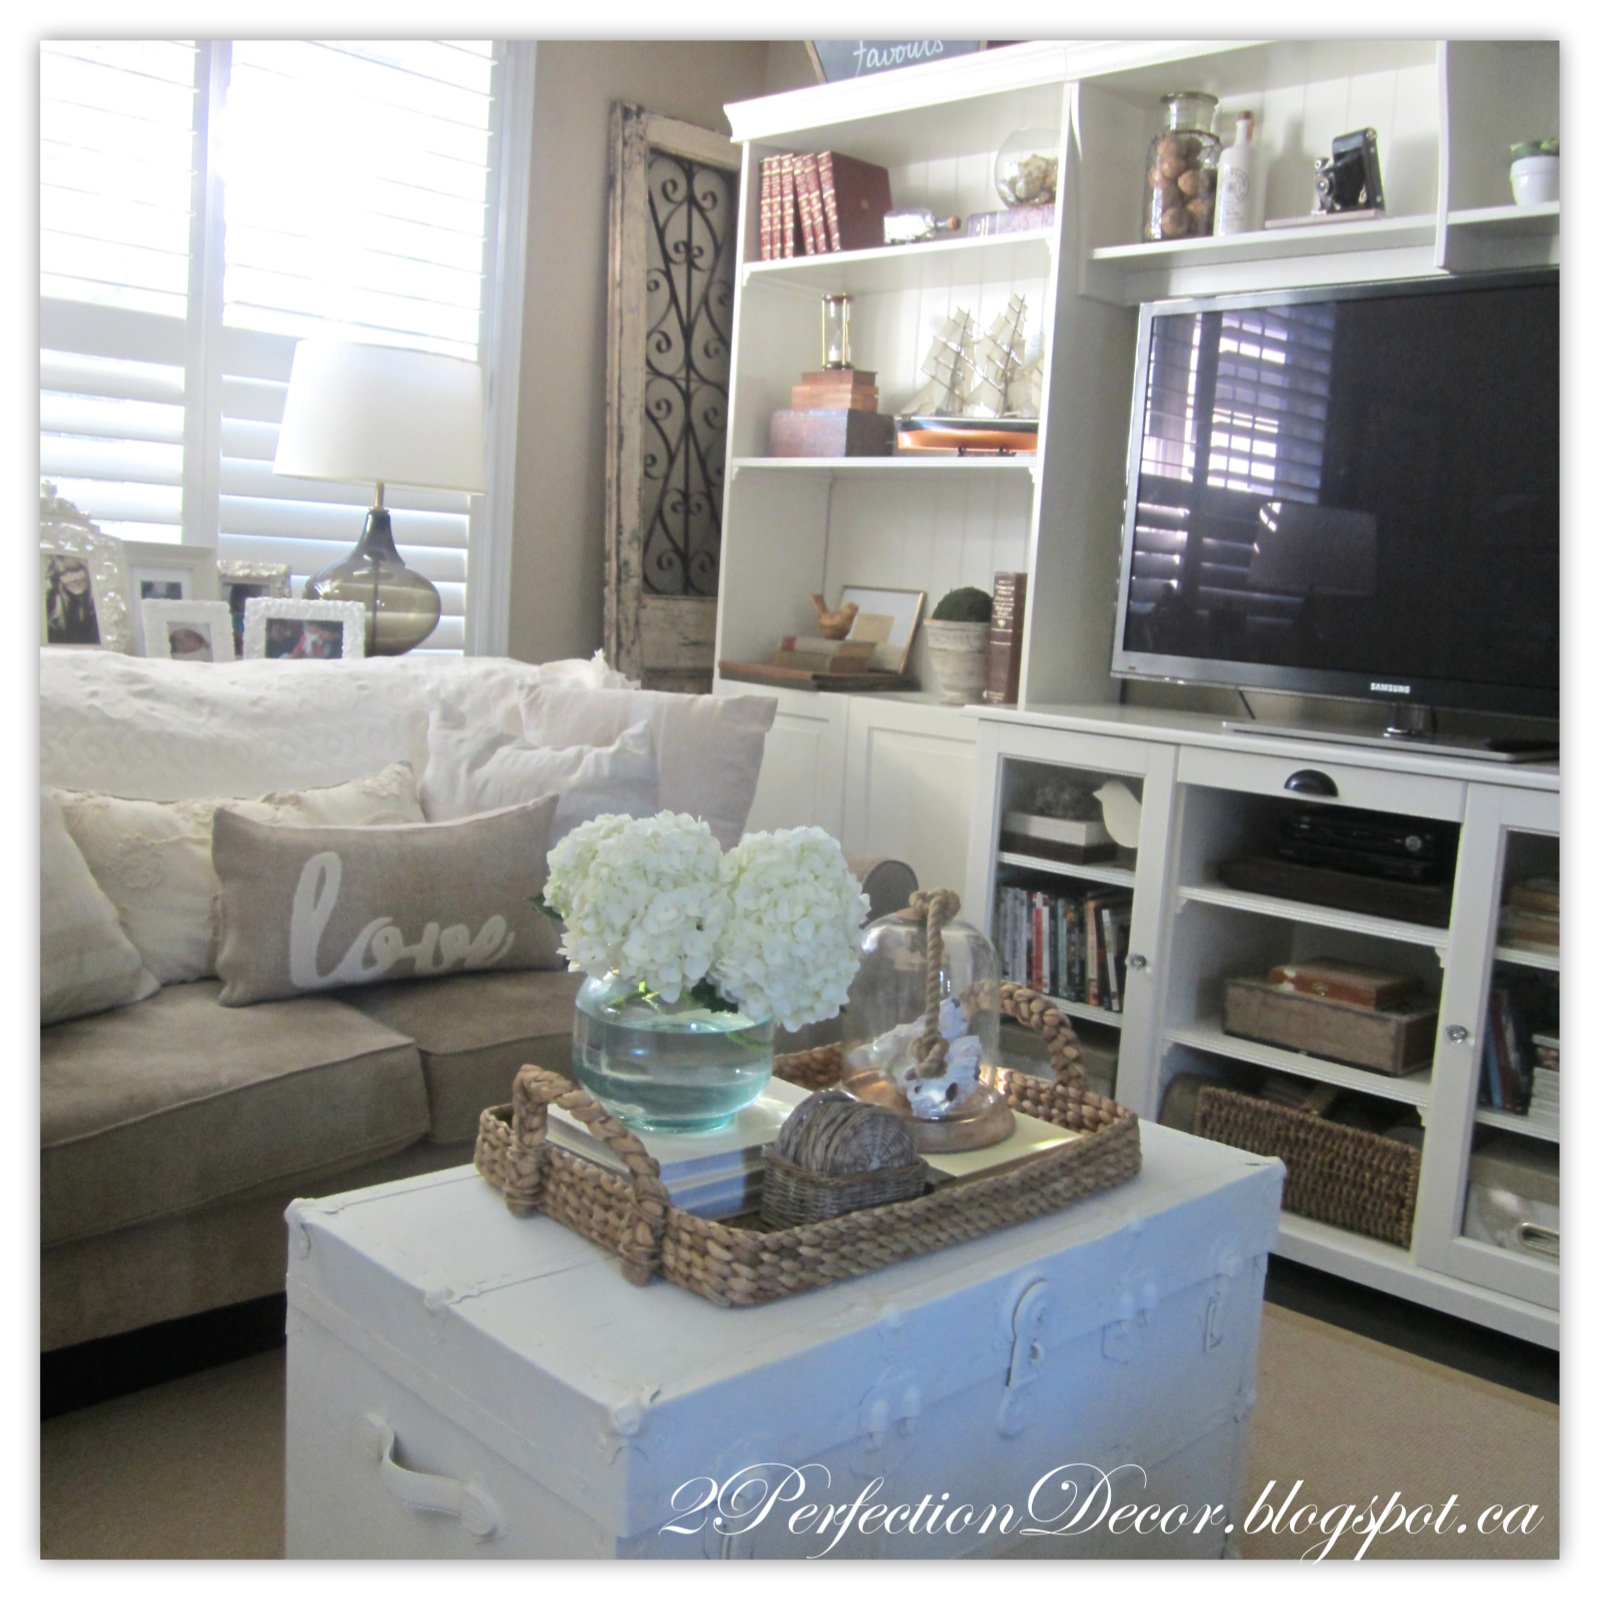 2Perfection Decor Fall Home Tour Part 2